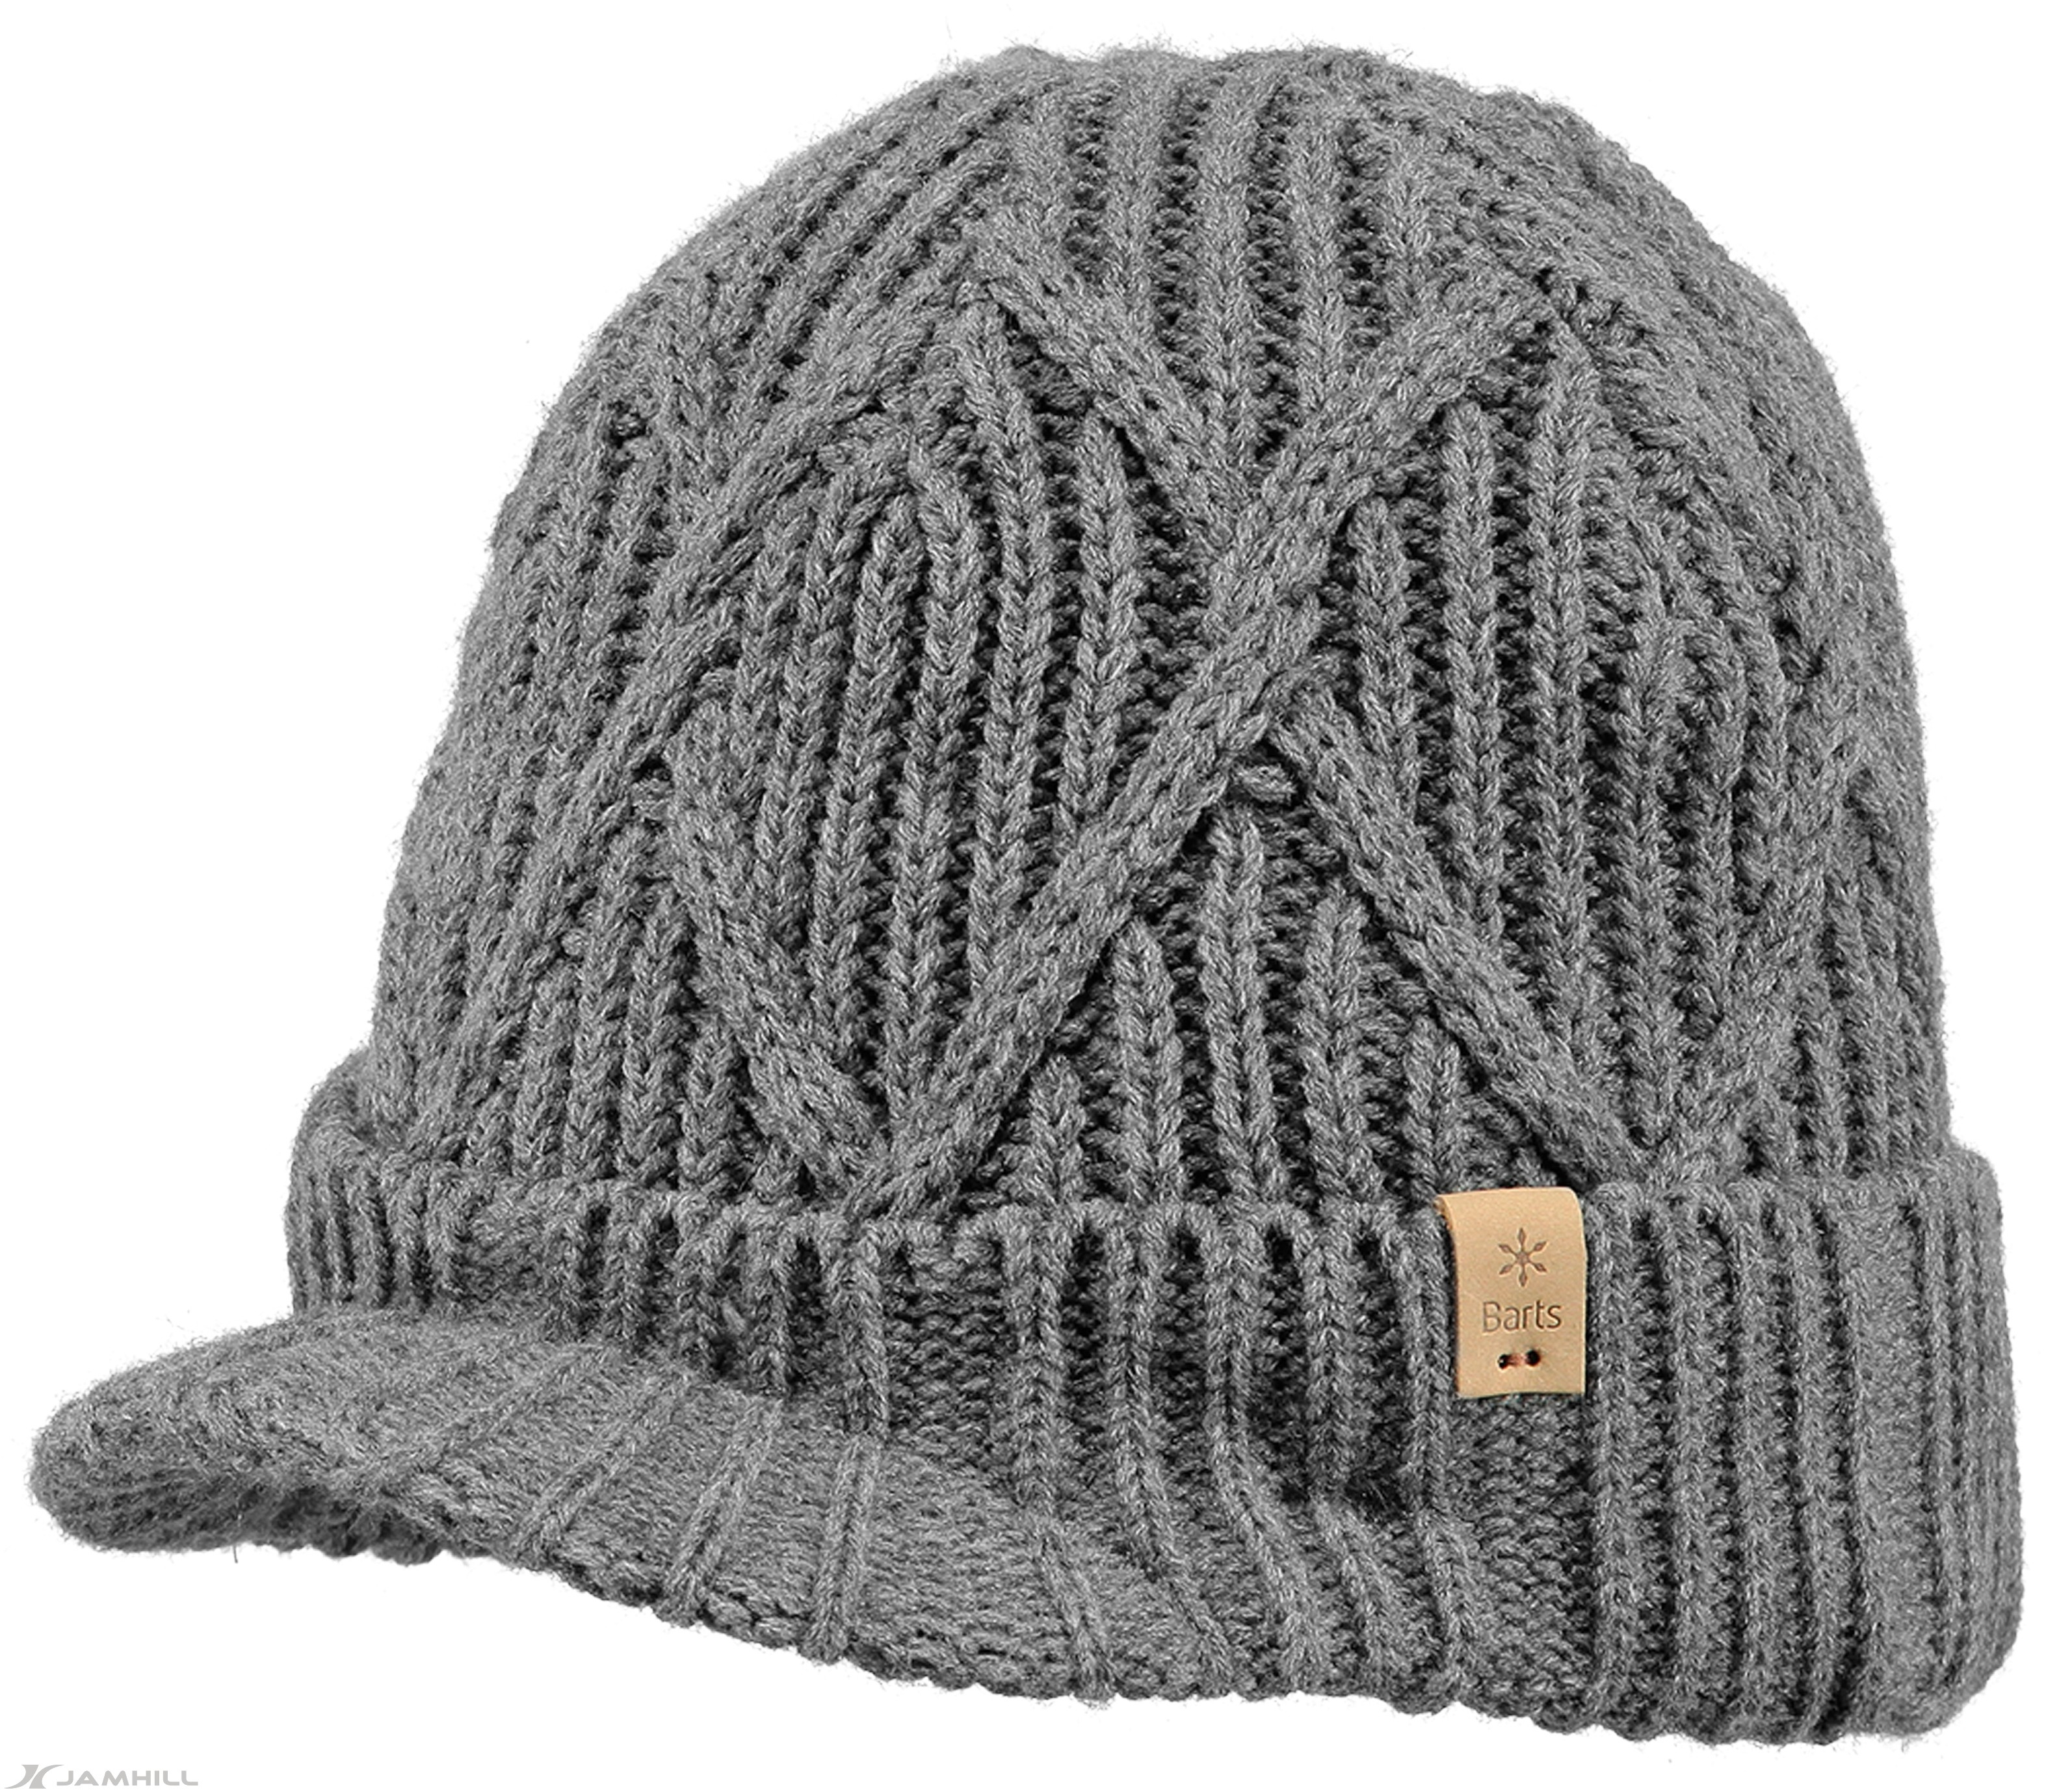 Knitting Pattern For Peaked Beanie : Barts Oscar peaked beanie in patterned knit with fleece ...